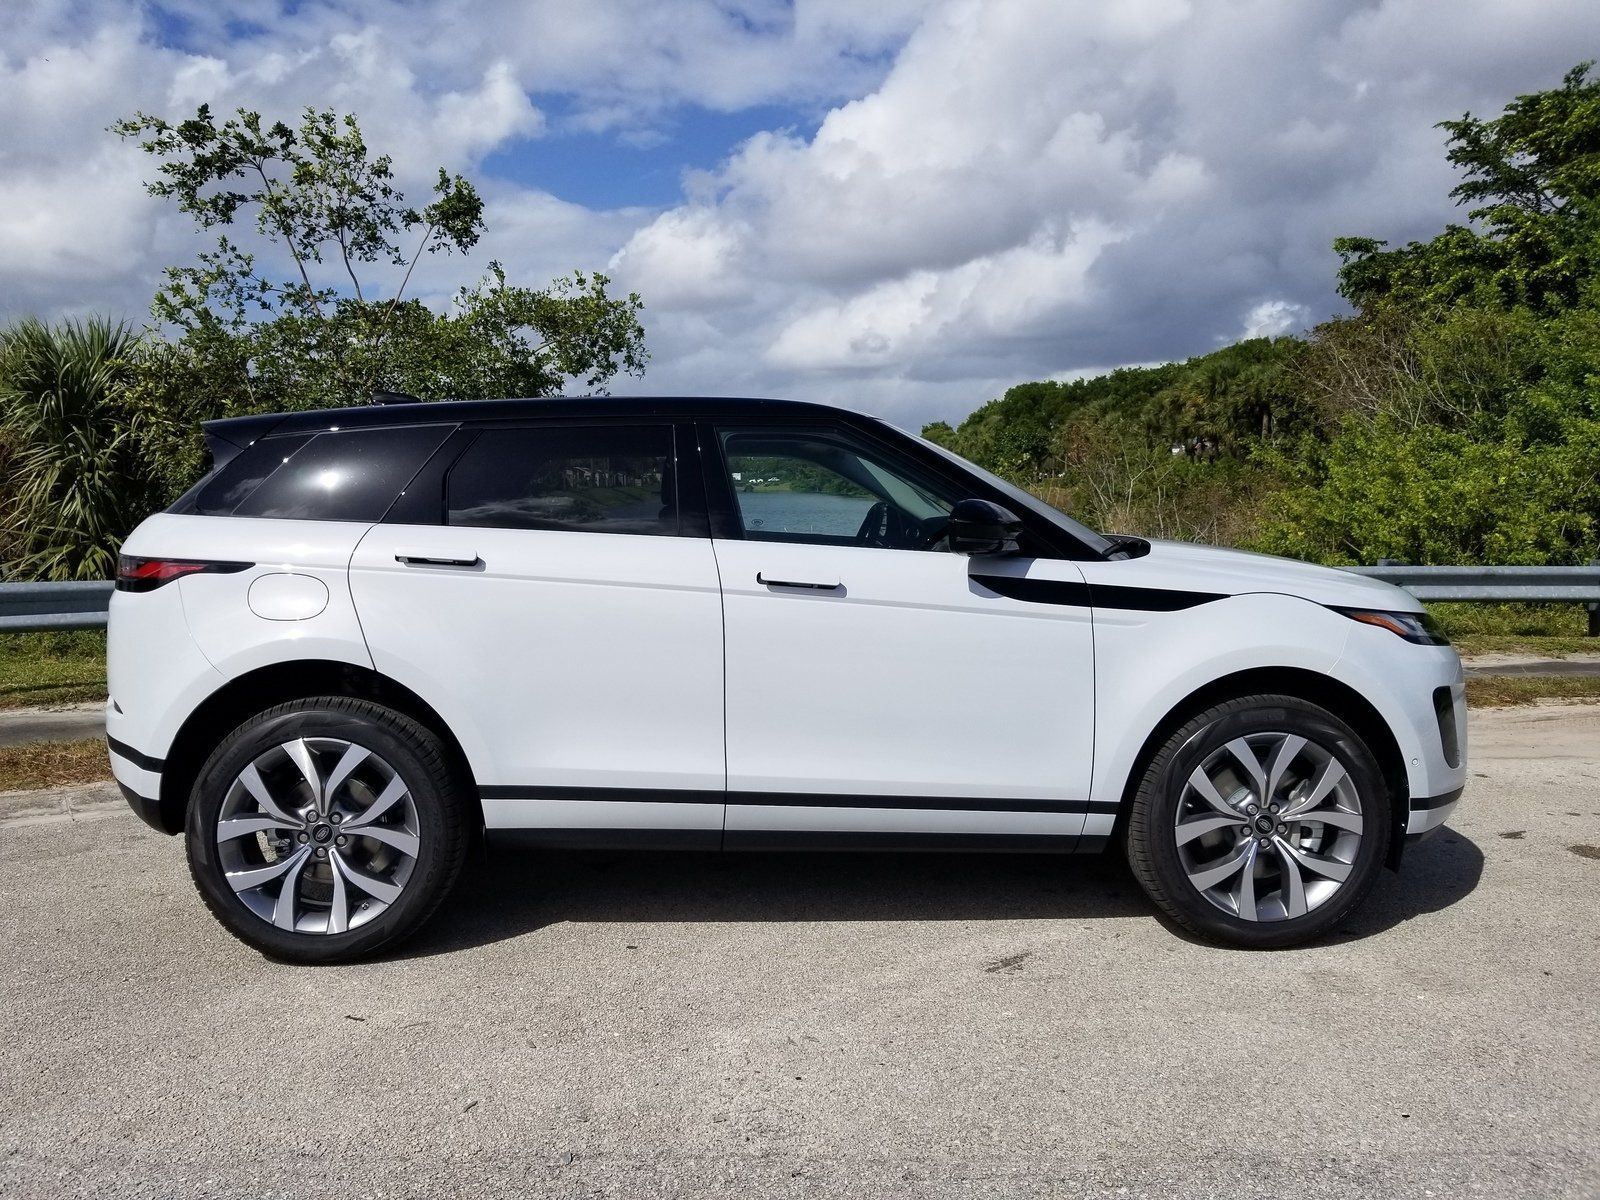 Land Rover SUVs for Sale in West Palm Beach 192 Vehicles